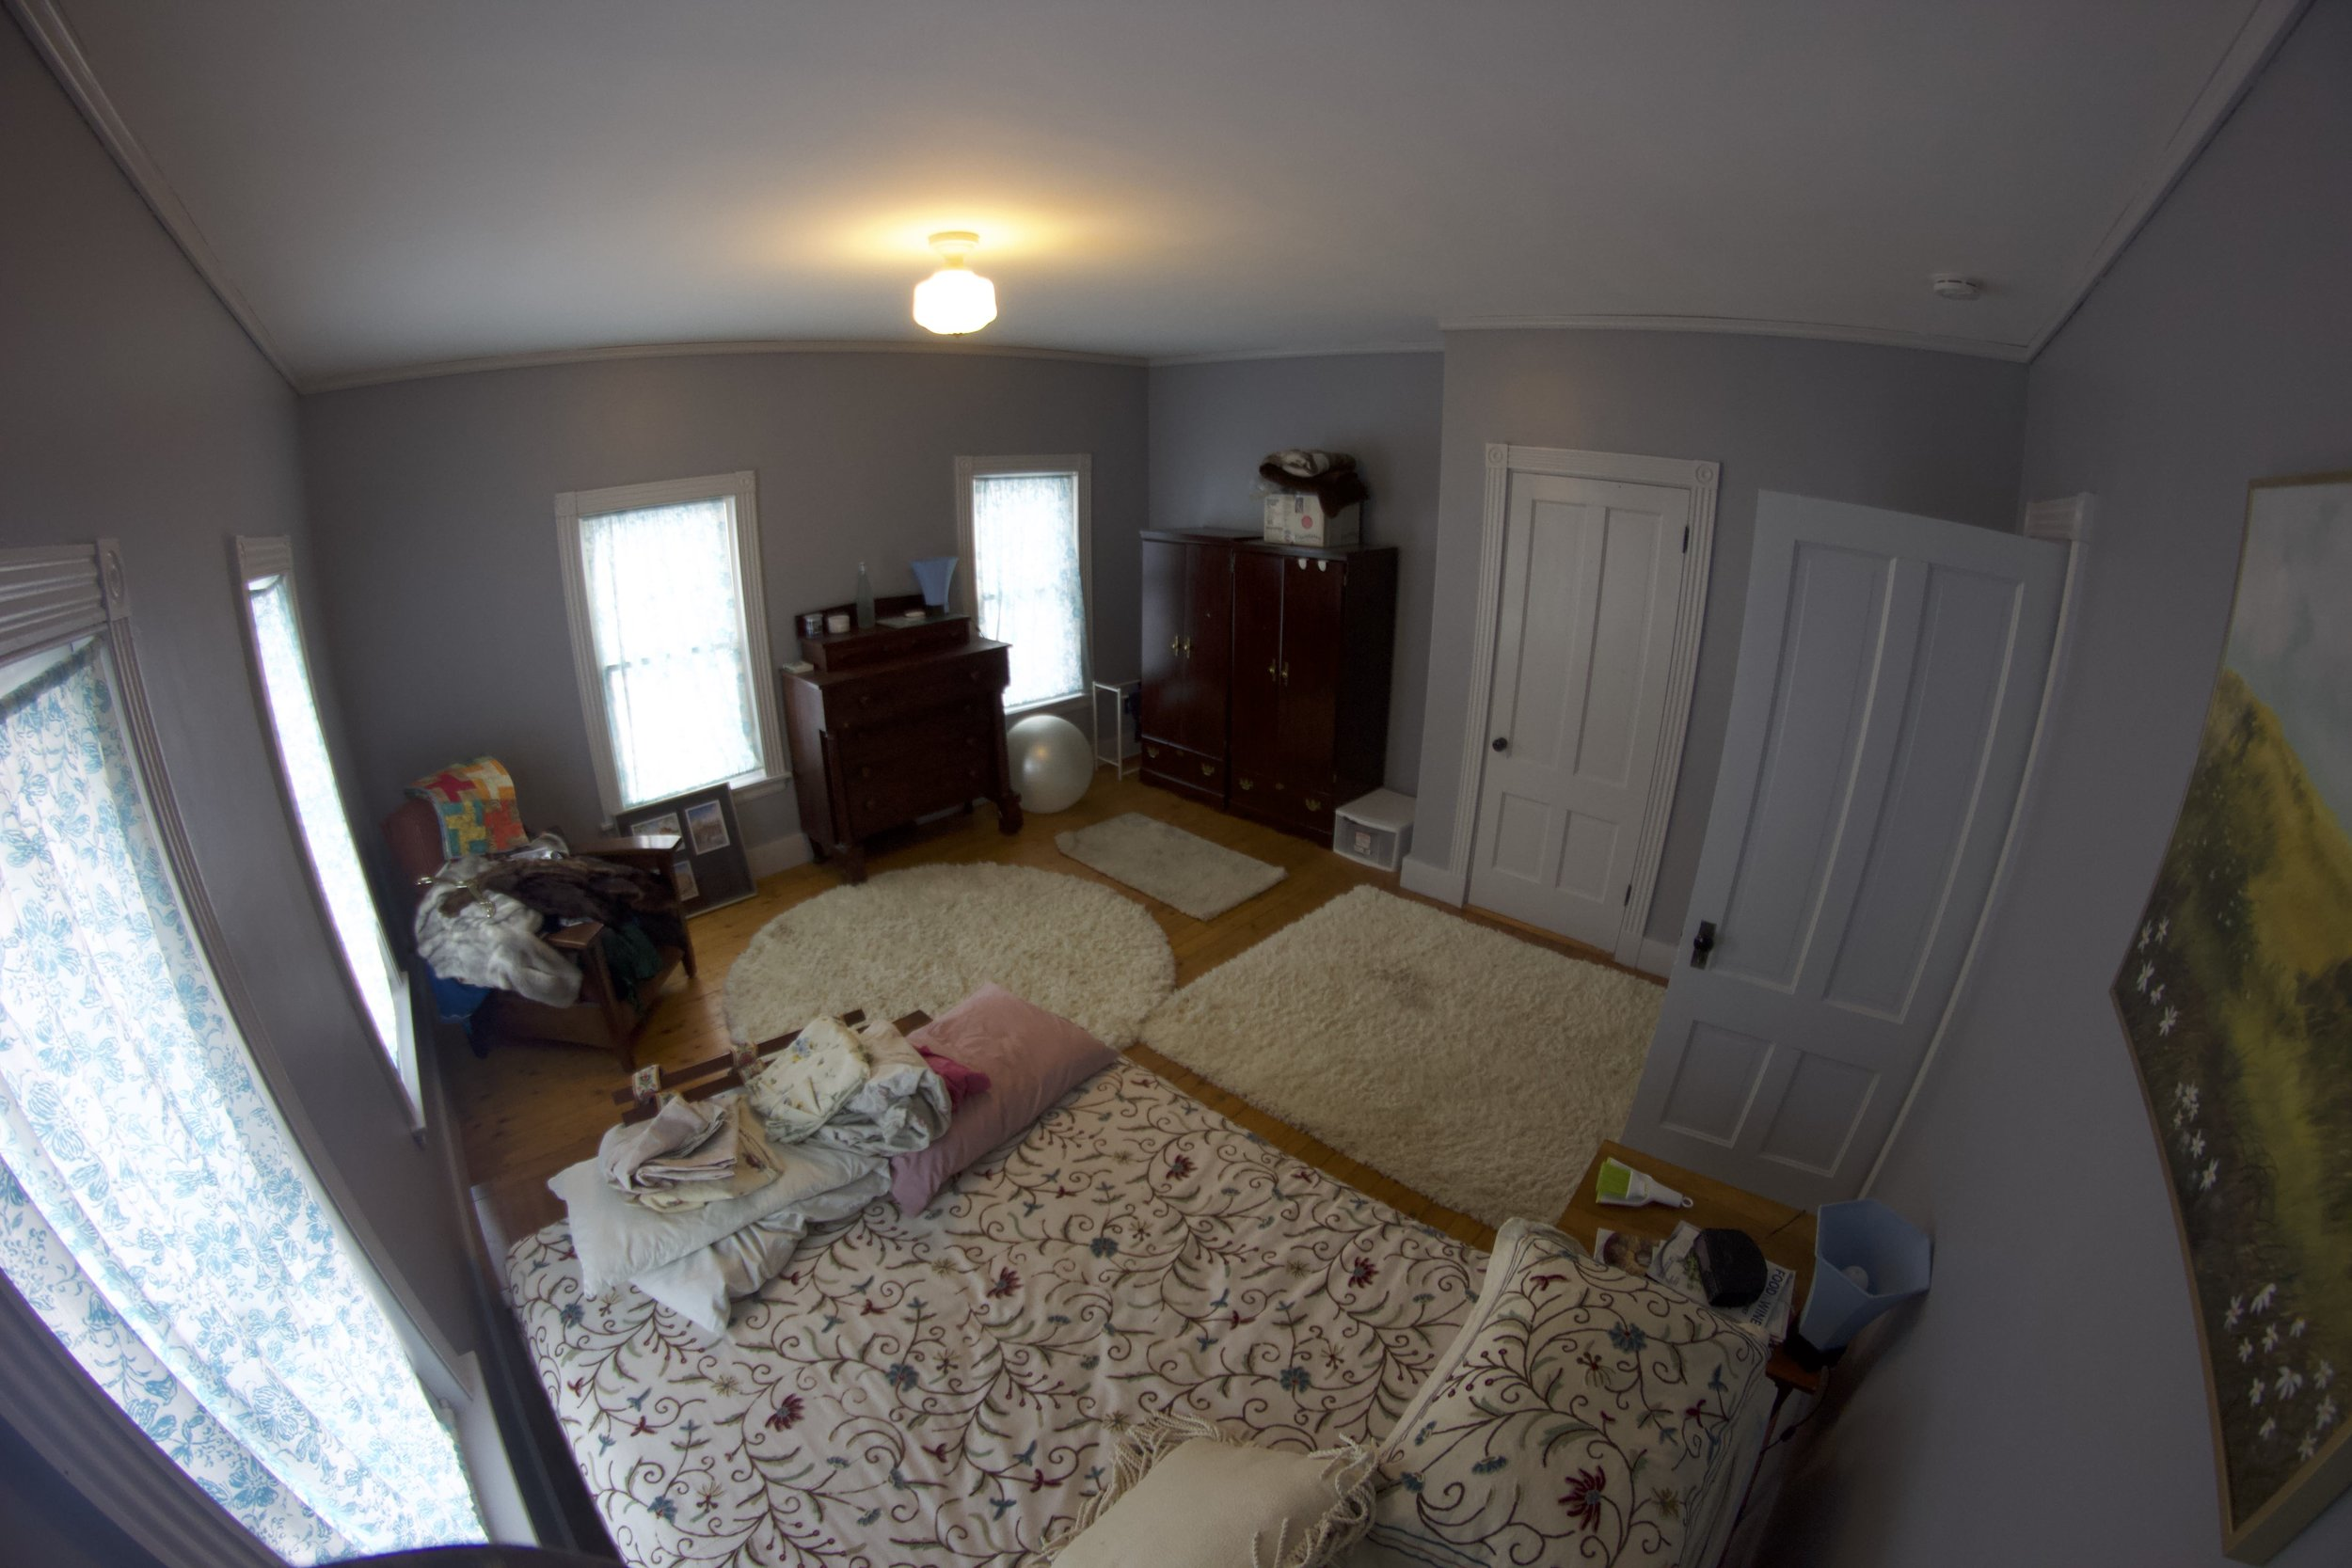 Interior painting, bedroom, after picture. Finished. Trim+walls